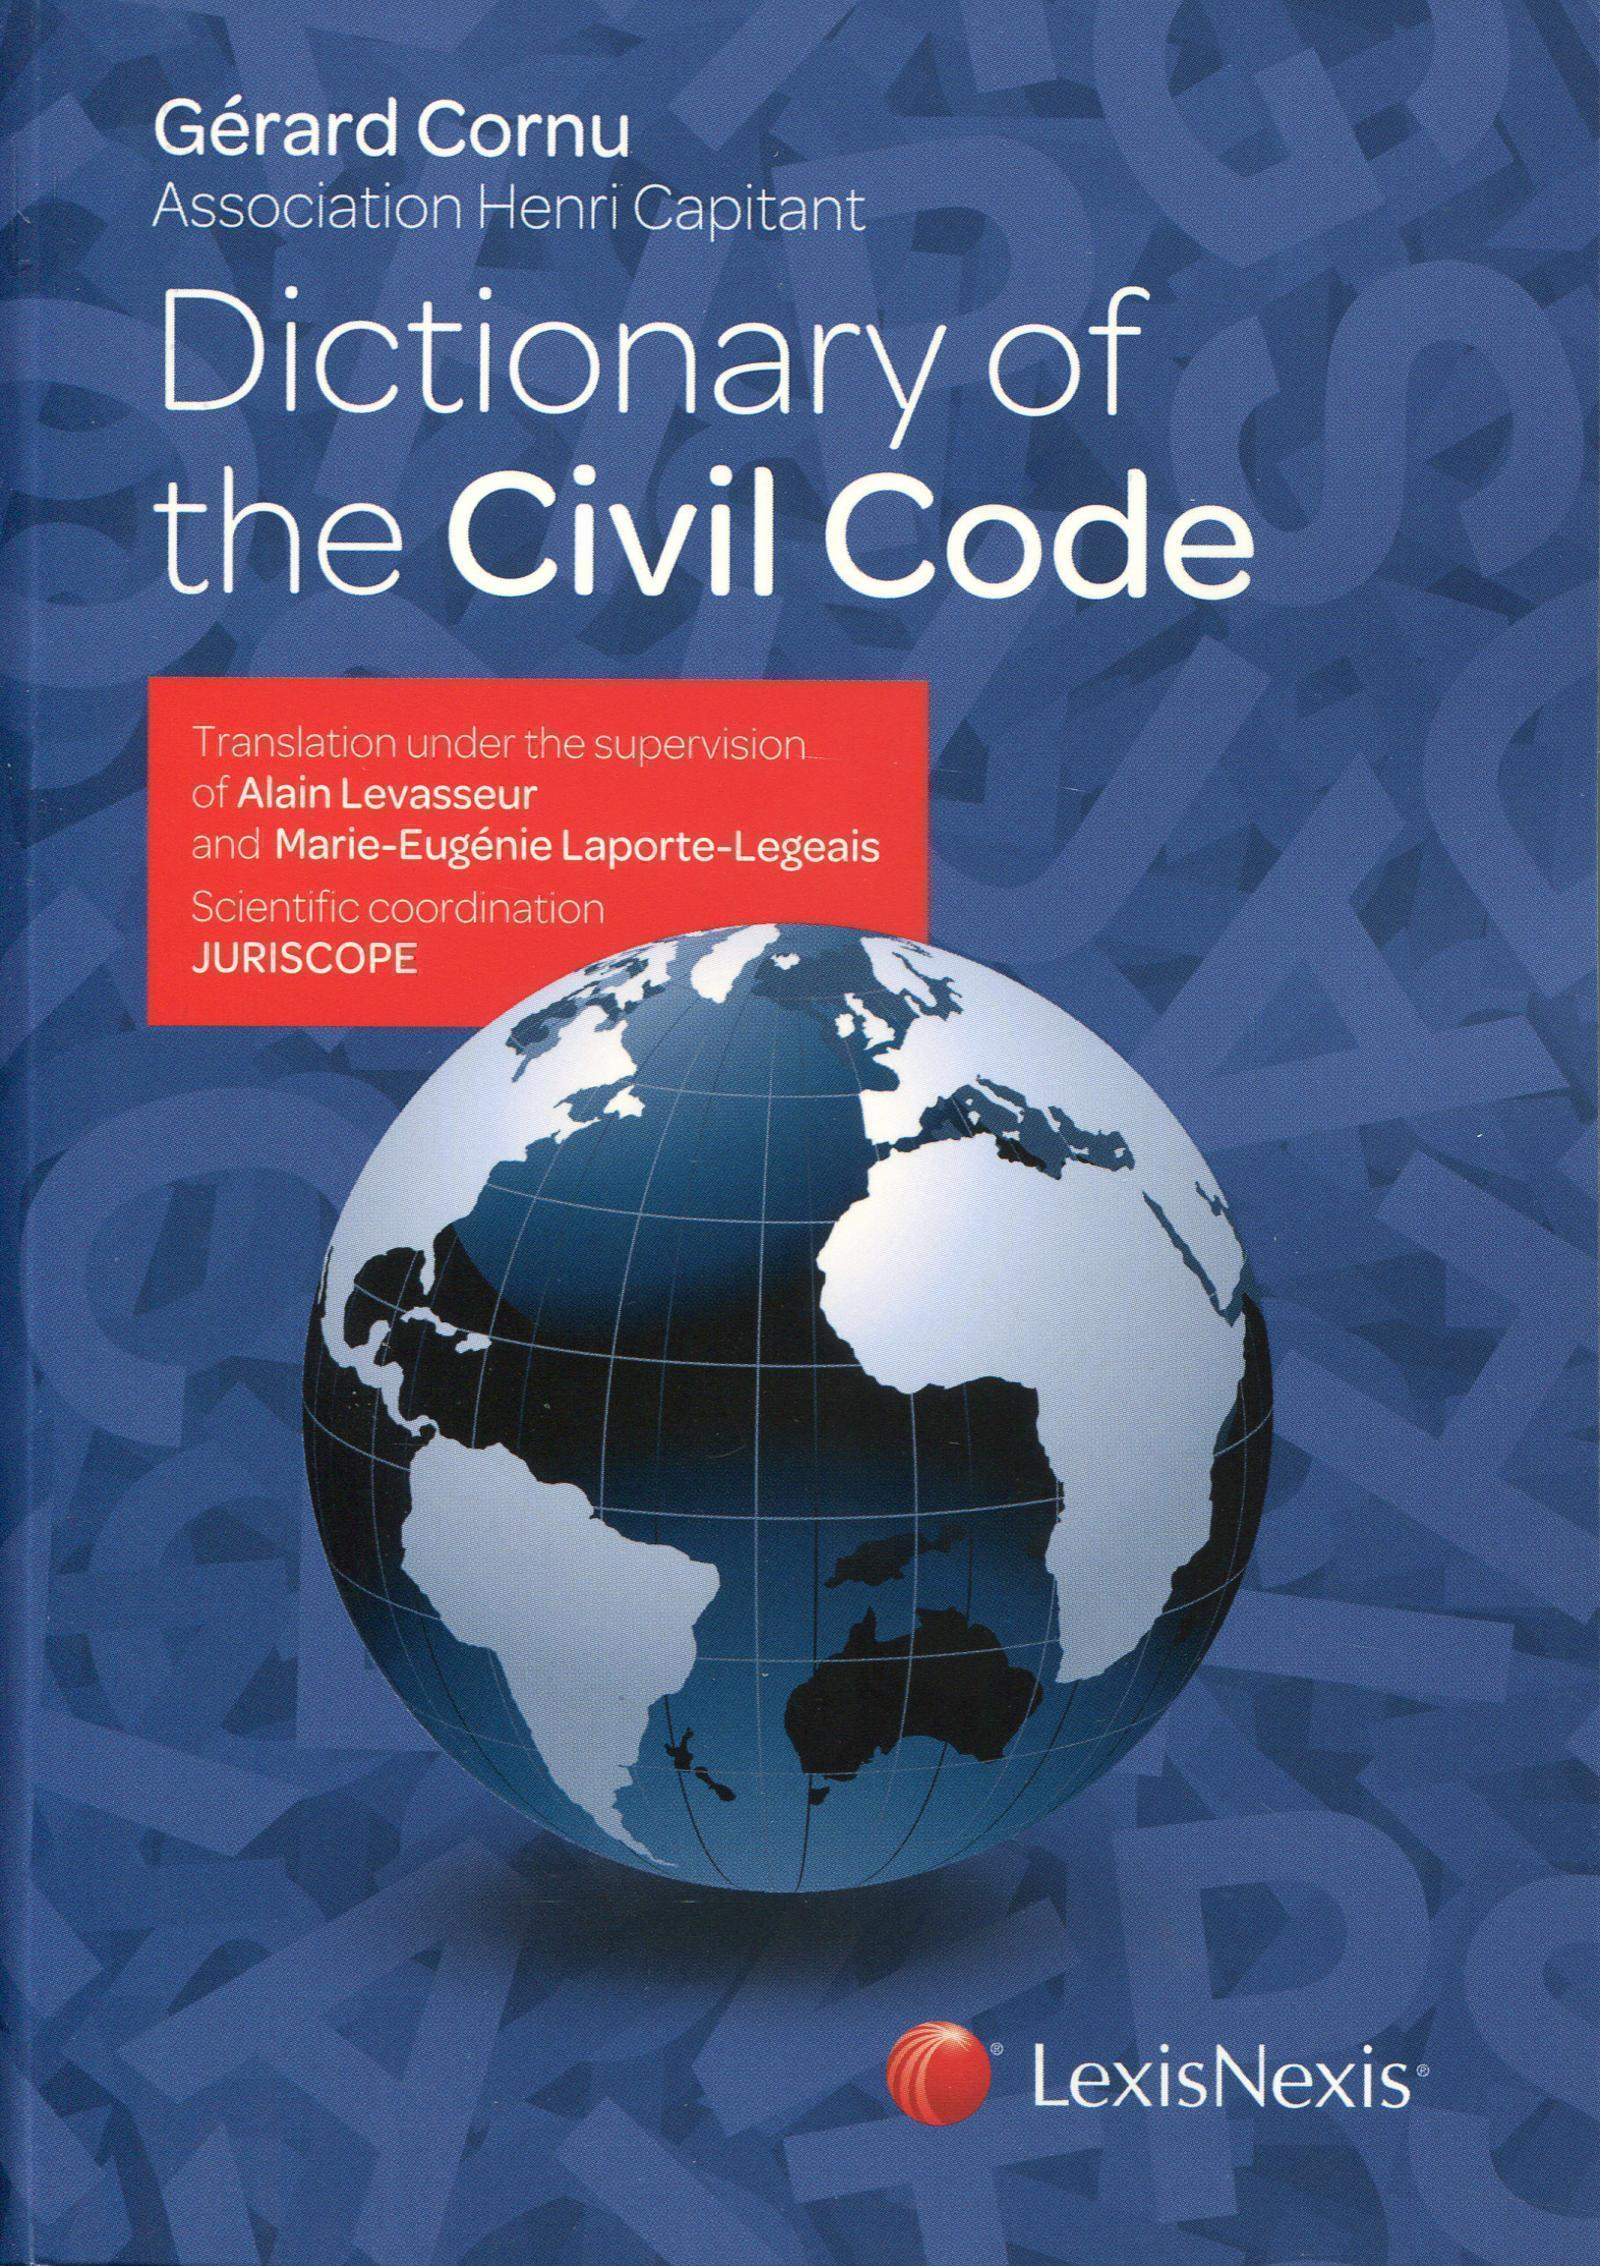 DICTIONARY OF THE CIVIL CODE